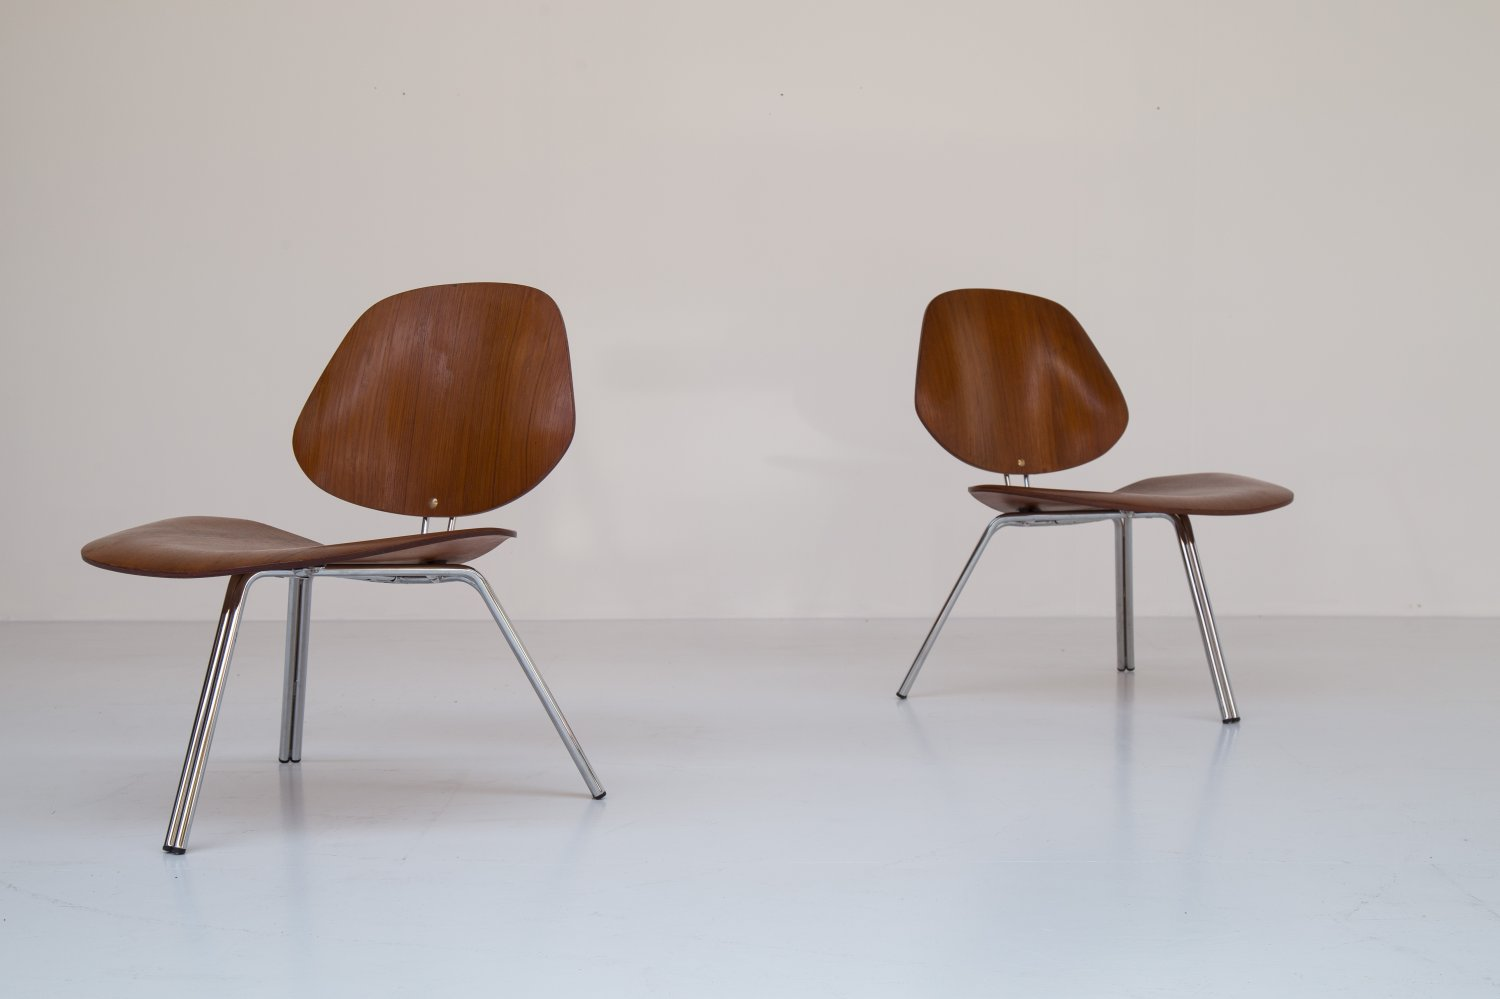 Pair of P31 Osvaldo Borsani chairs for Tecno